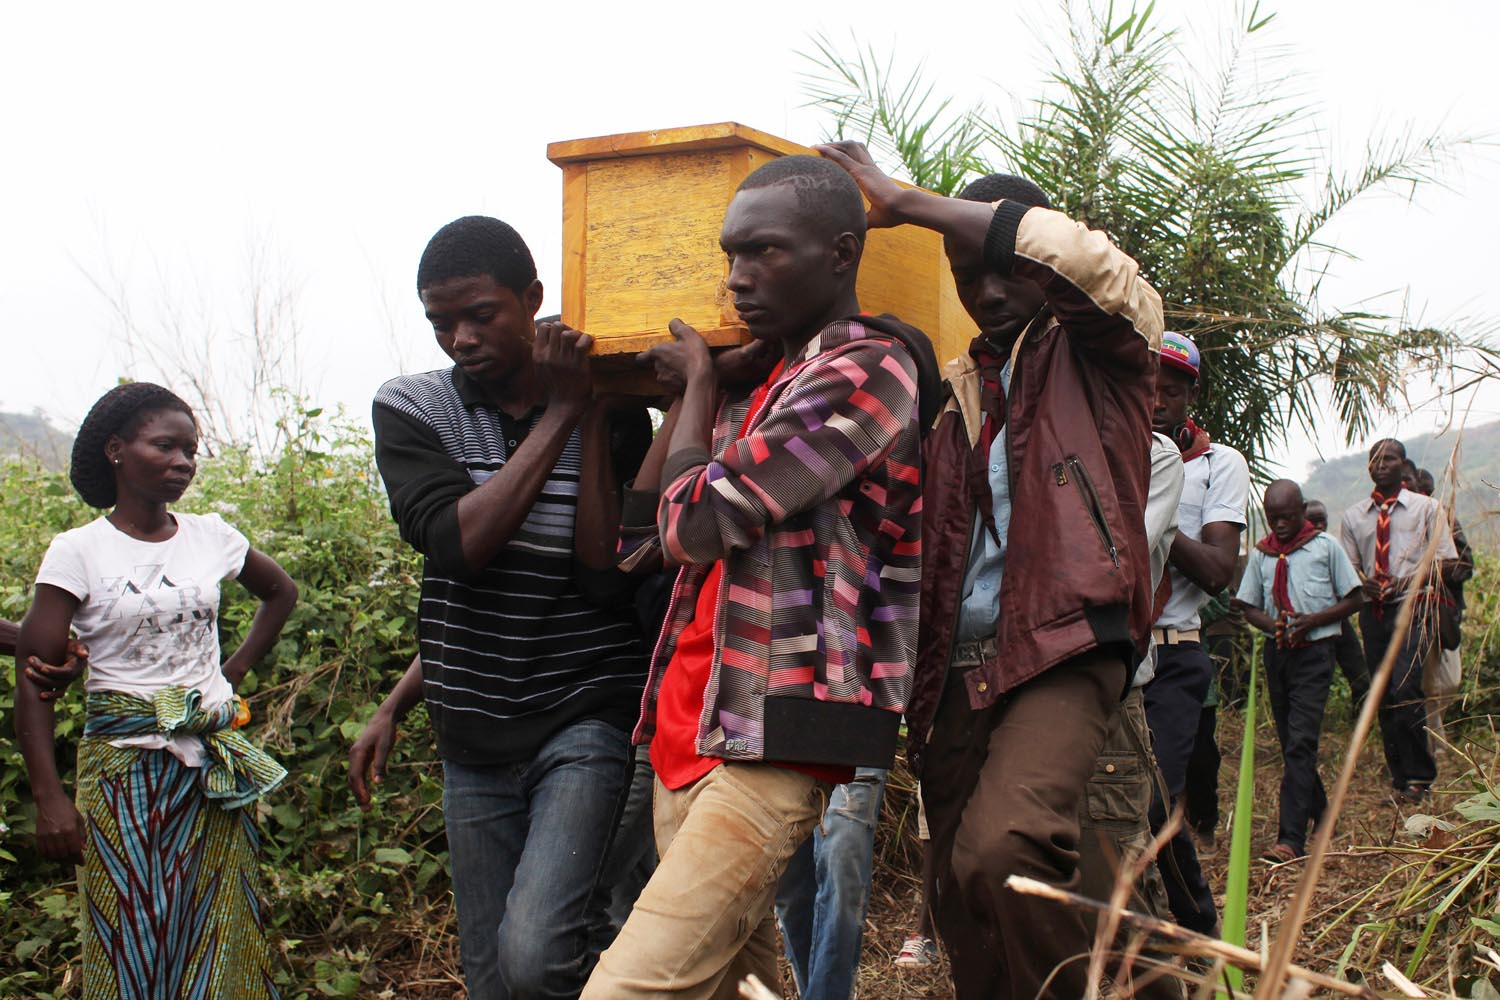 Dec. 27, 2013. Friends and relatives of Yanguere Richard, 21, carry his remains to the burial grounds in Bangui. Richard was killed in the inter-religious fighting in Bangui, Central African Republic.